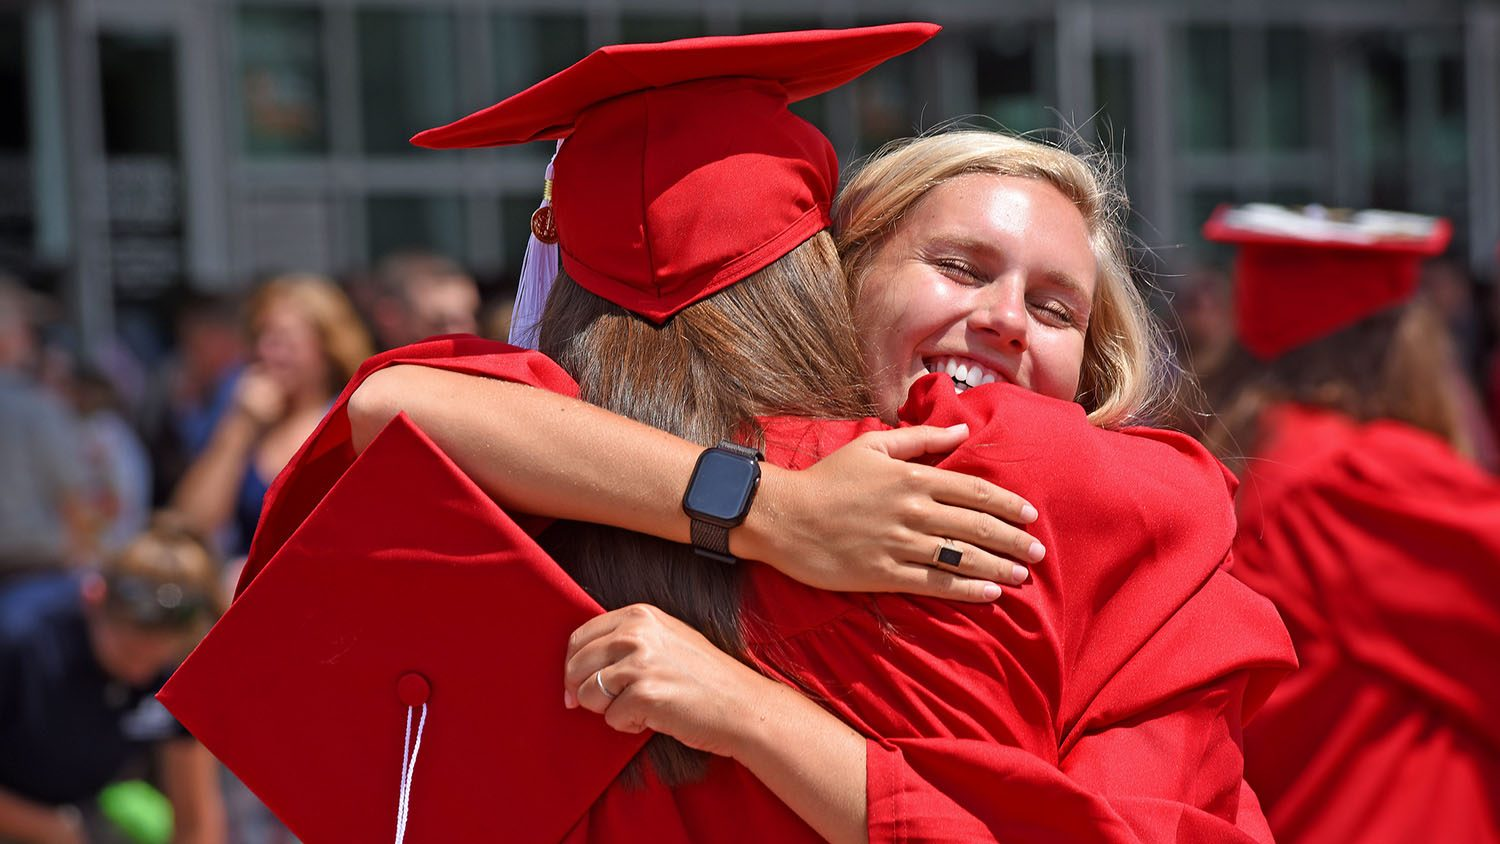 Graduates celebrate their success with a hug.